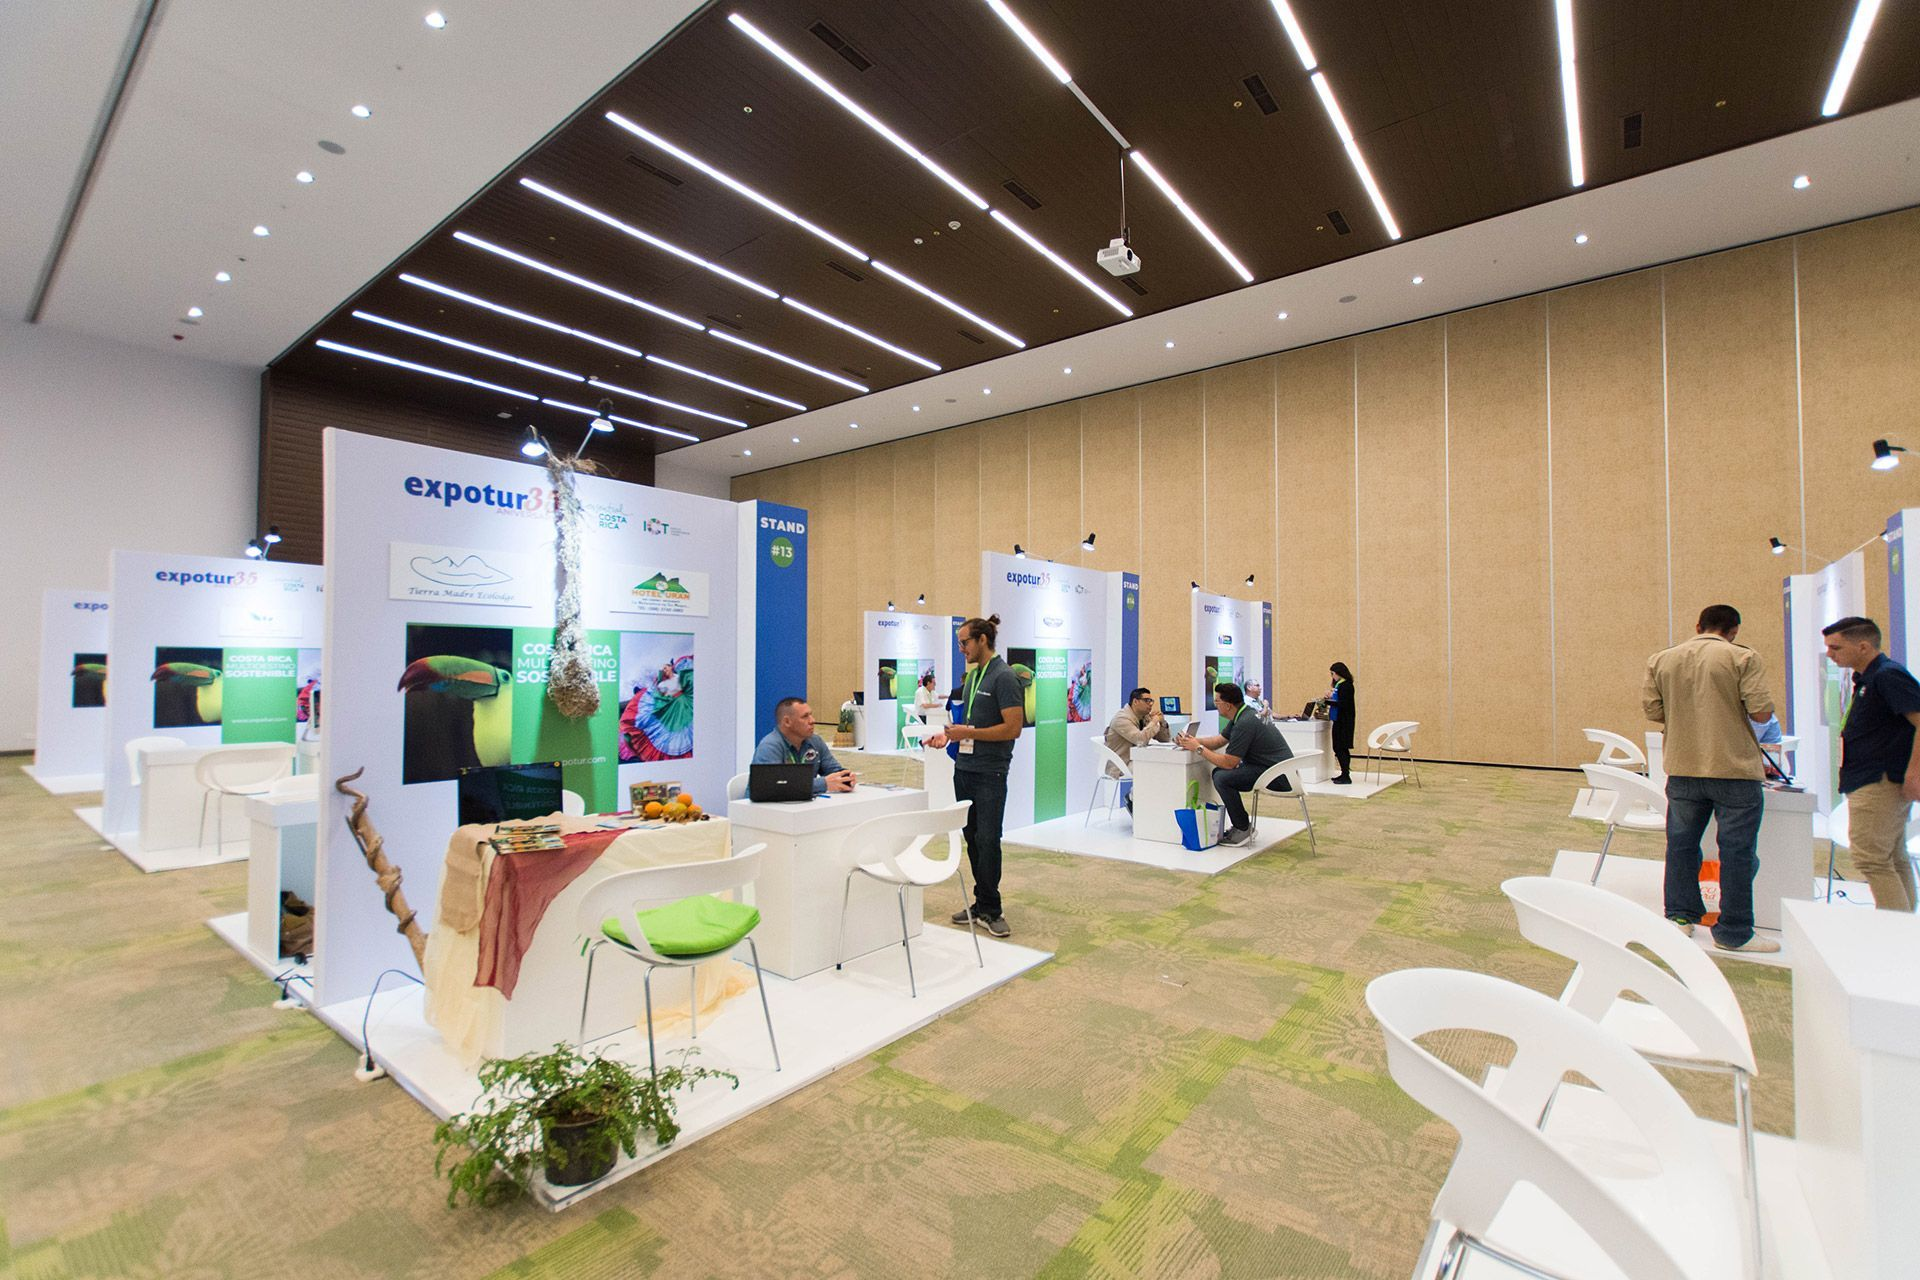 Exhibitor Services Office 8